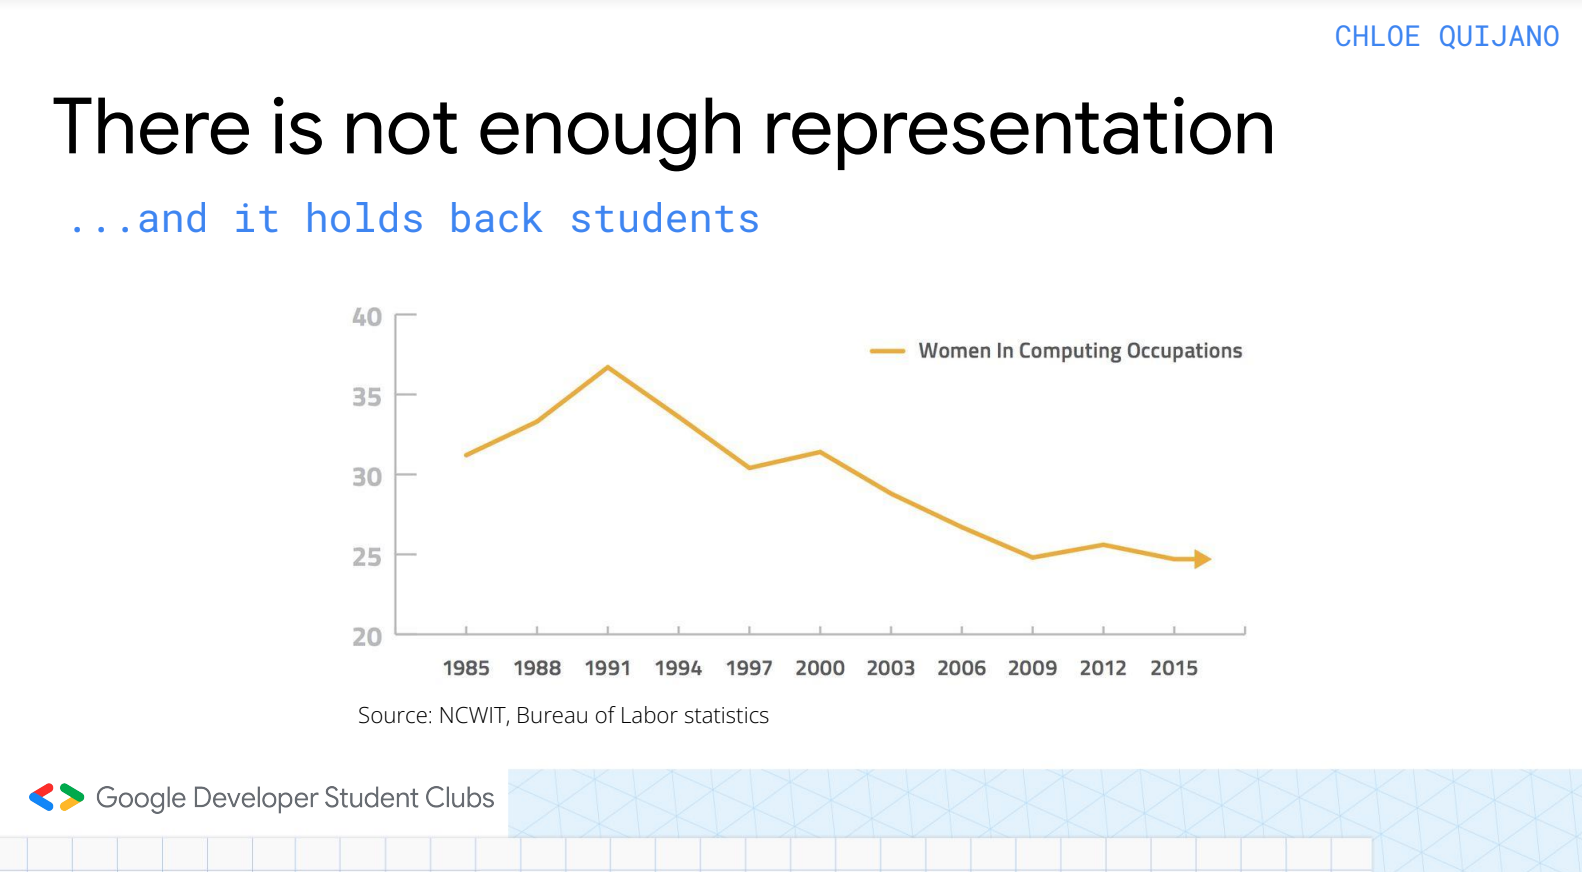 Statistics illustrating the low number of women in computing occupations